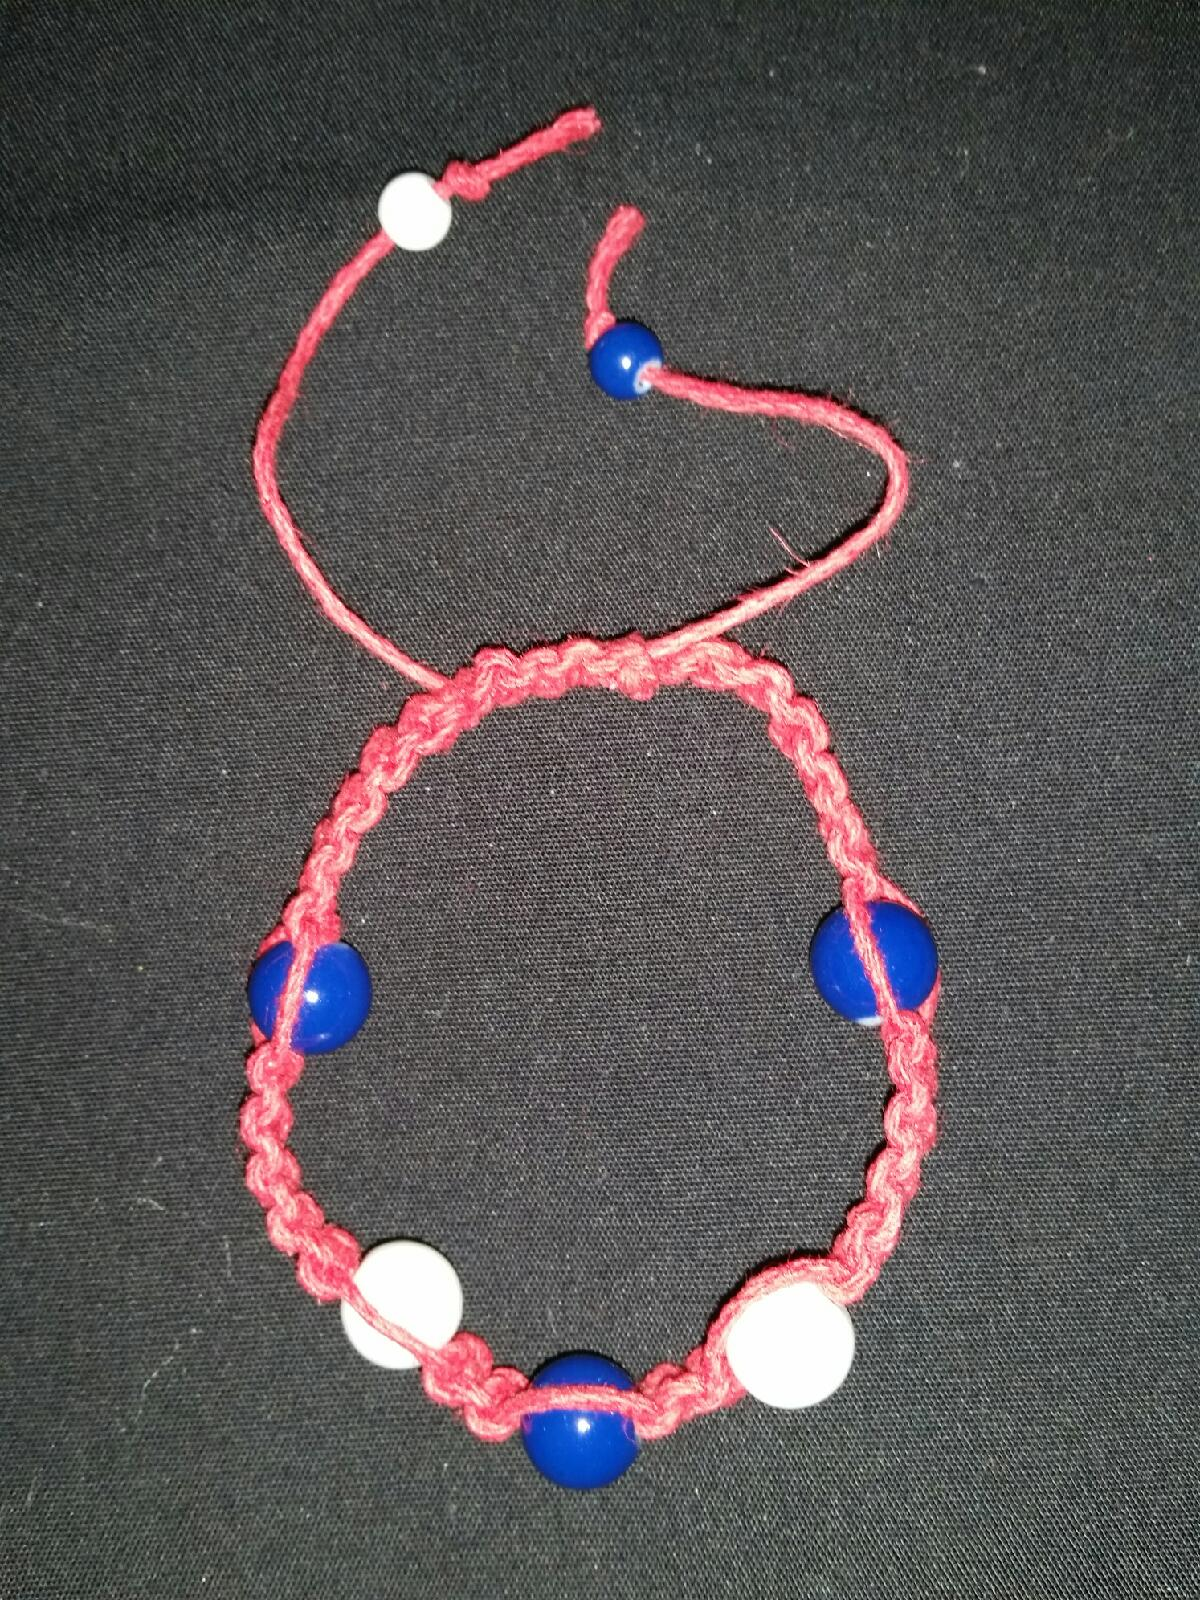 Red White and Blue Hemp Bracelet with Beads